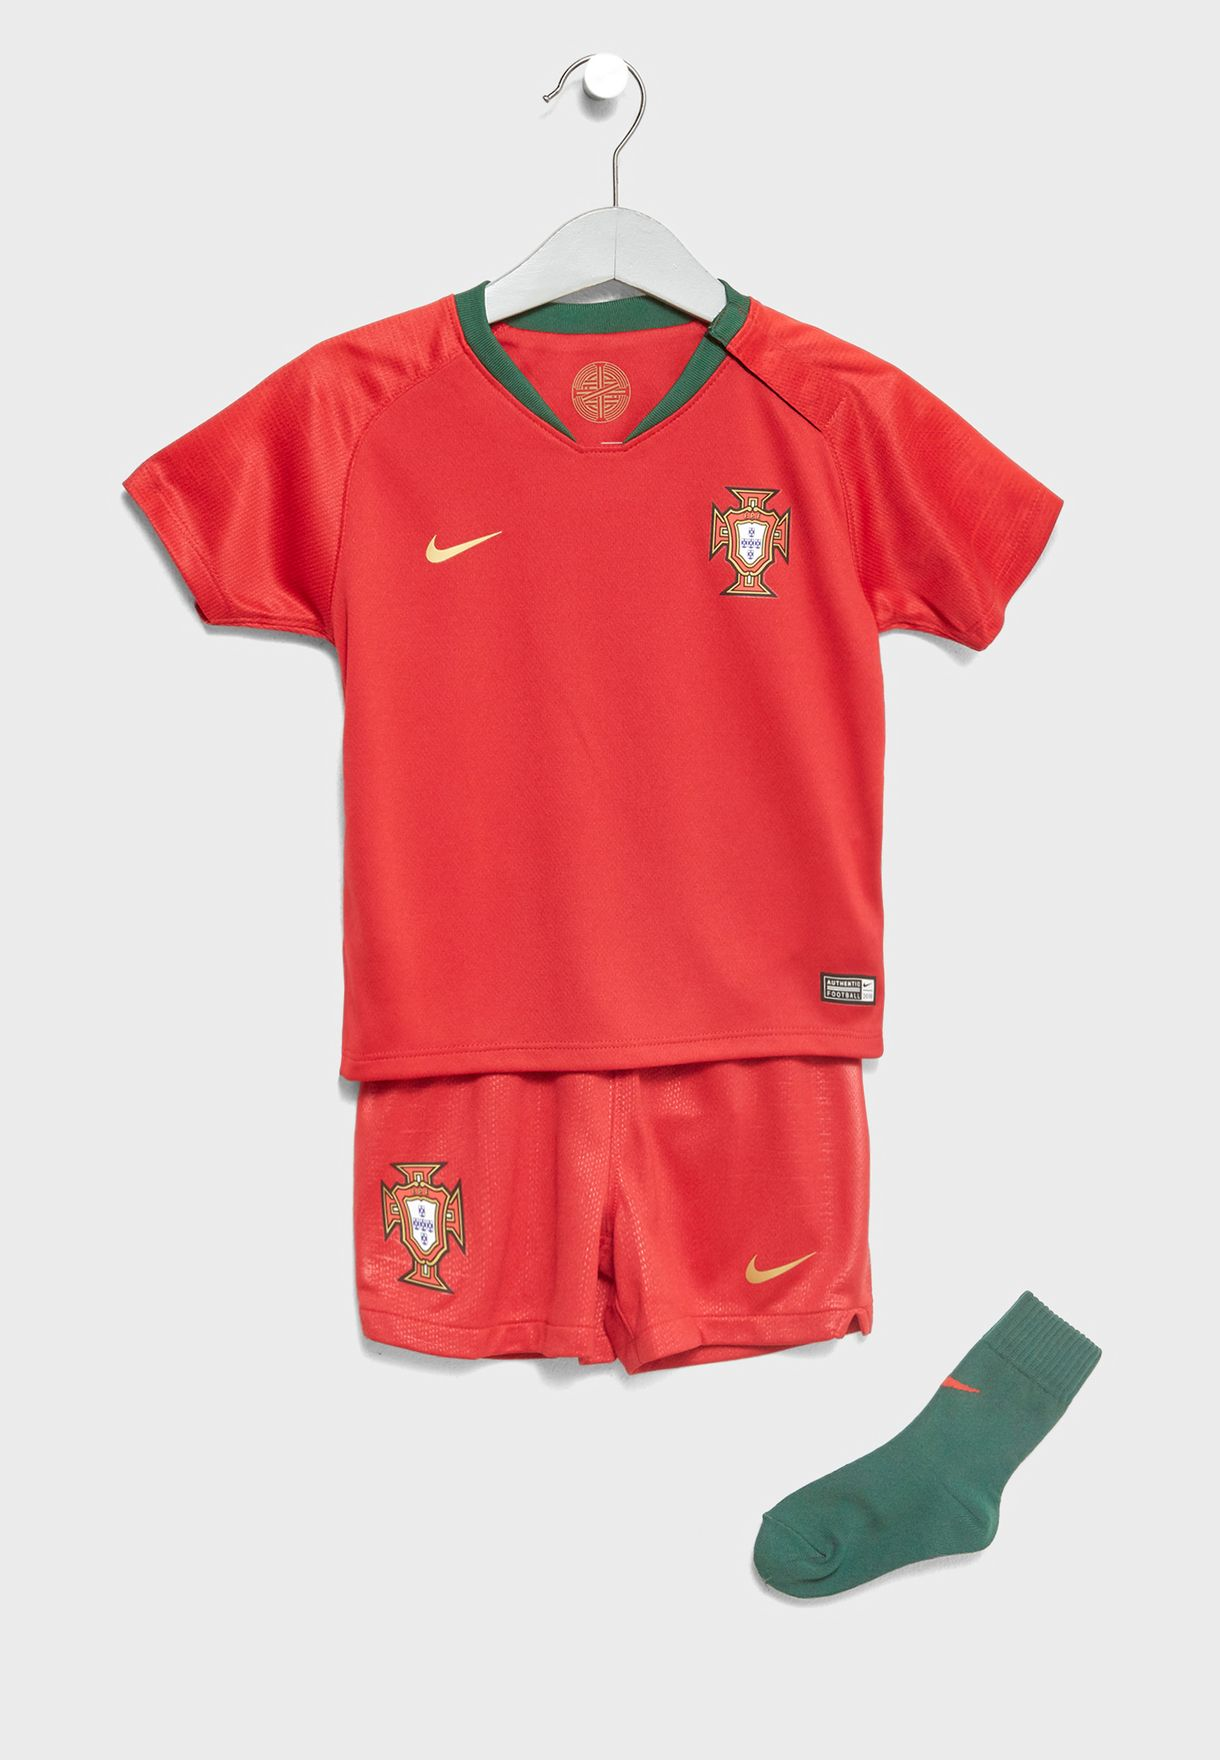 4a4e49fc1 Shop Nike red Infant Portugal Home Kit 894058-687 for Kids in Kuwait ...